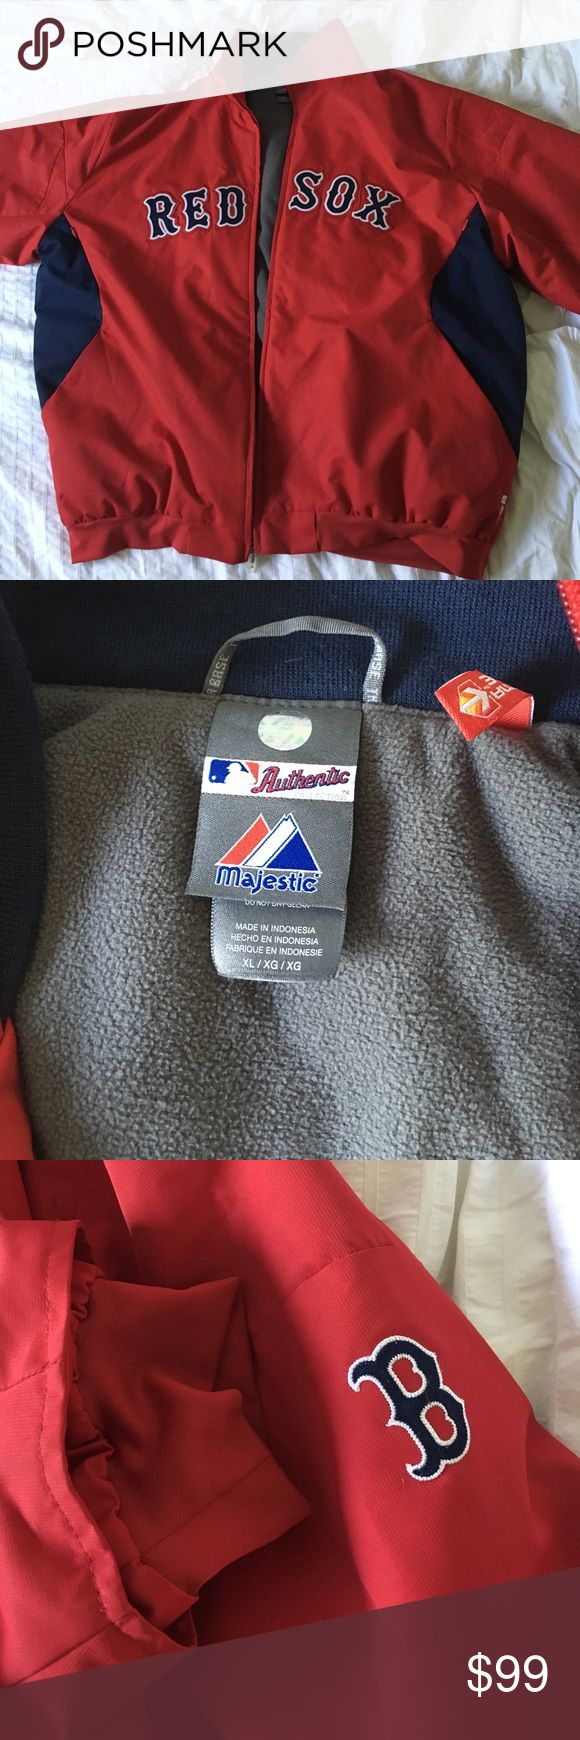 Red Sox Coat Authentic MLB Boston Red Sox coat in XL, in excellent condition, worn once. Nike MLB Jackets & Coats